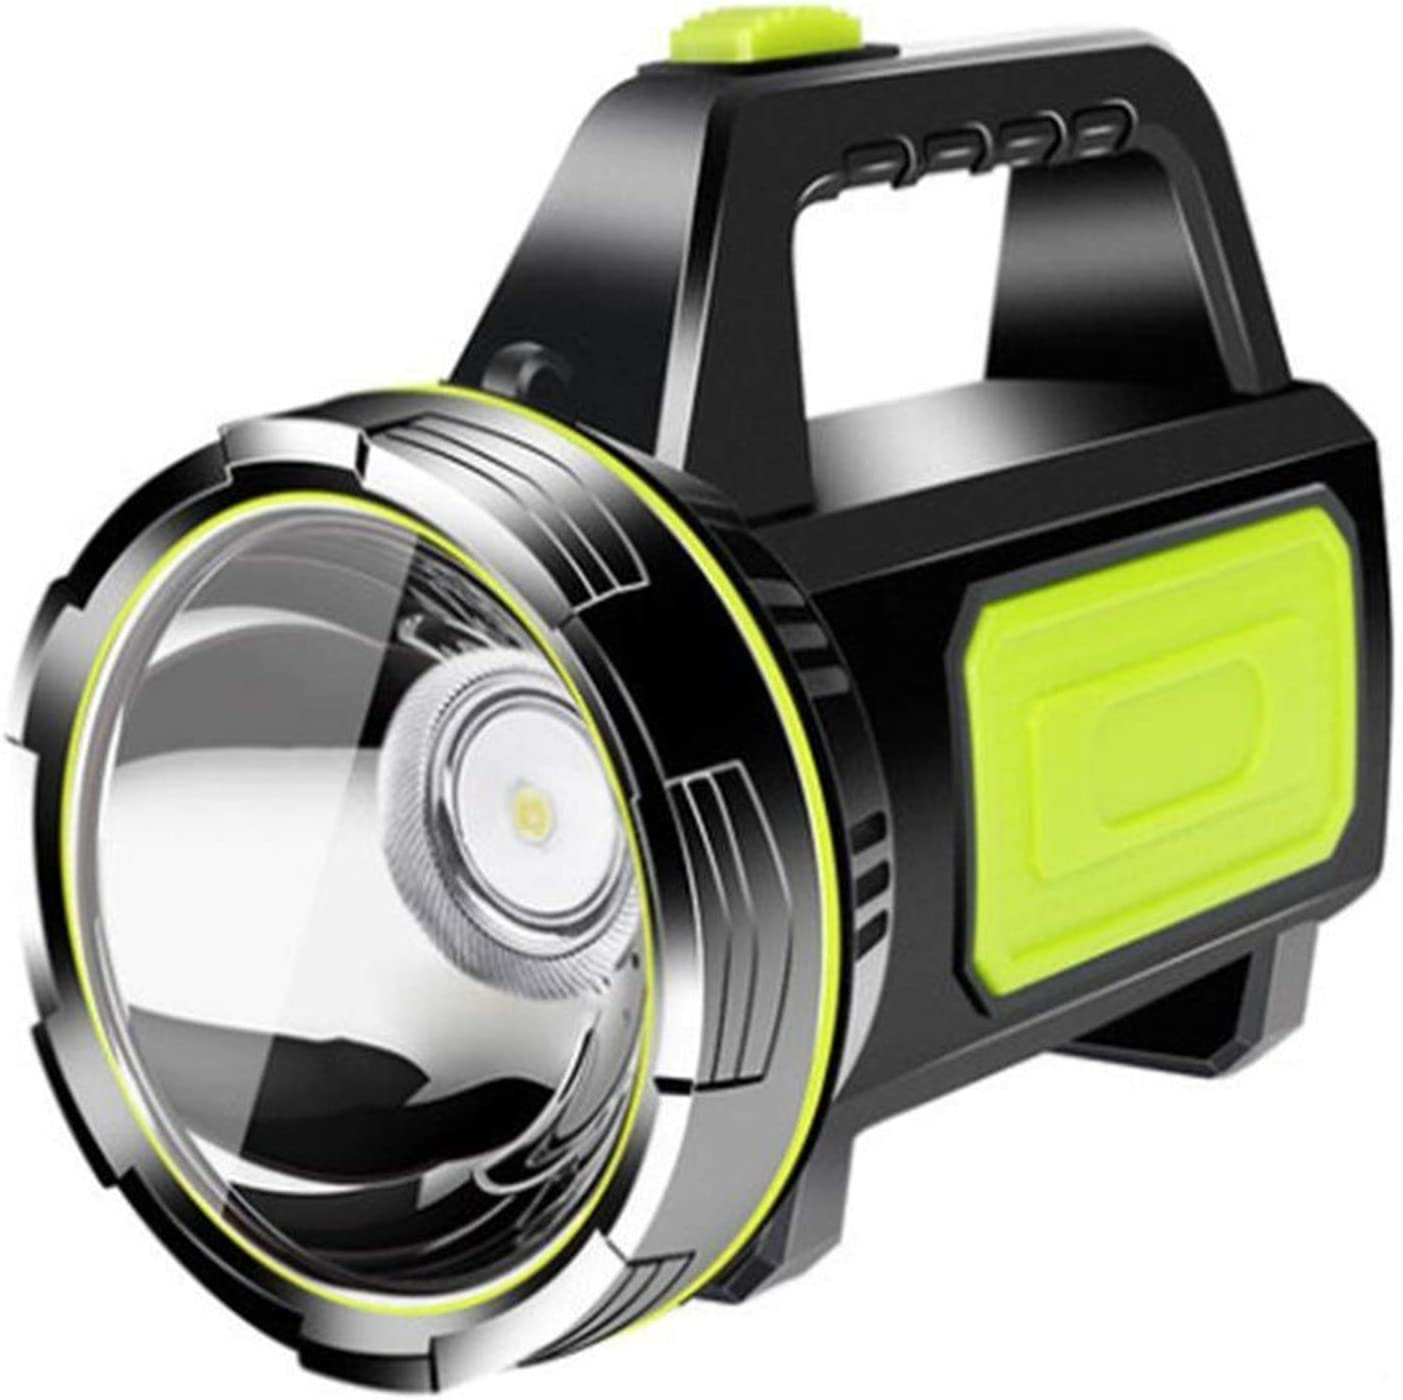 JSJJAUA searchlight Powerful LED Flashlight OFFicial store USB Max 62% OFF Rechargeable Sea